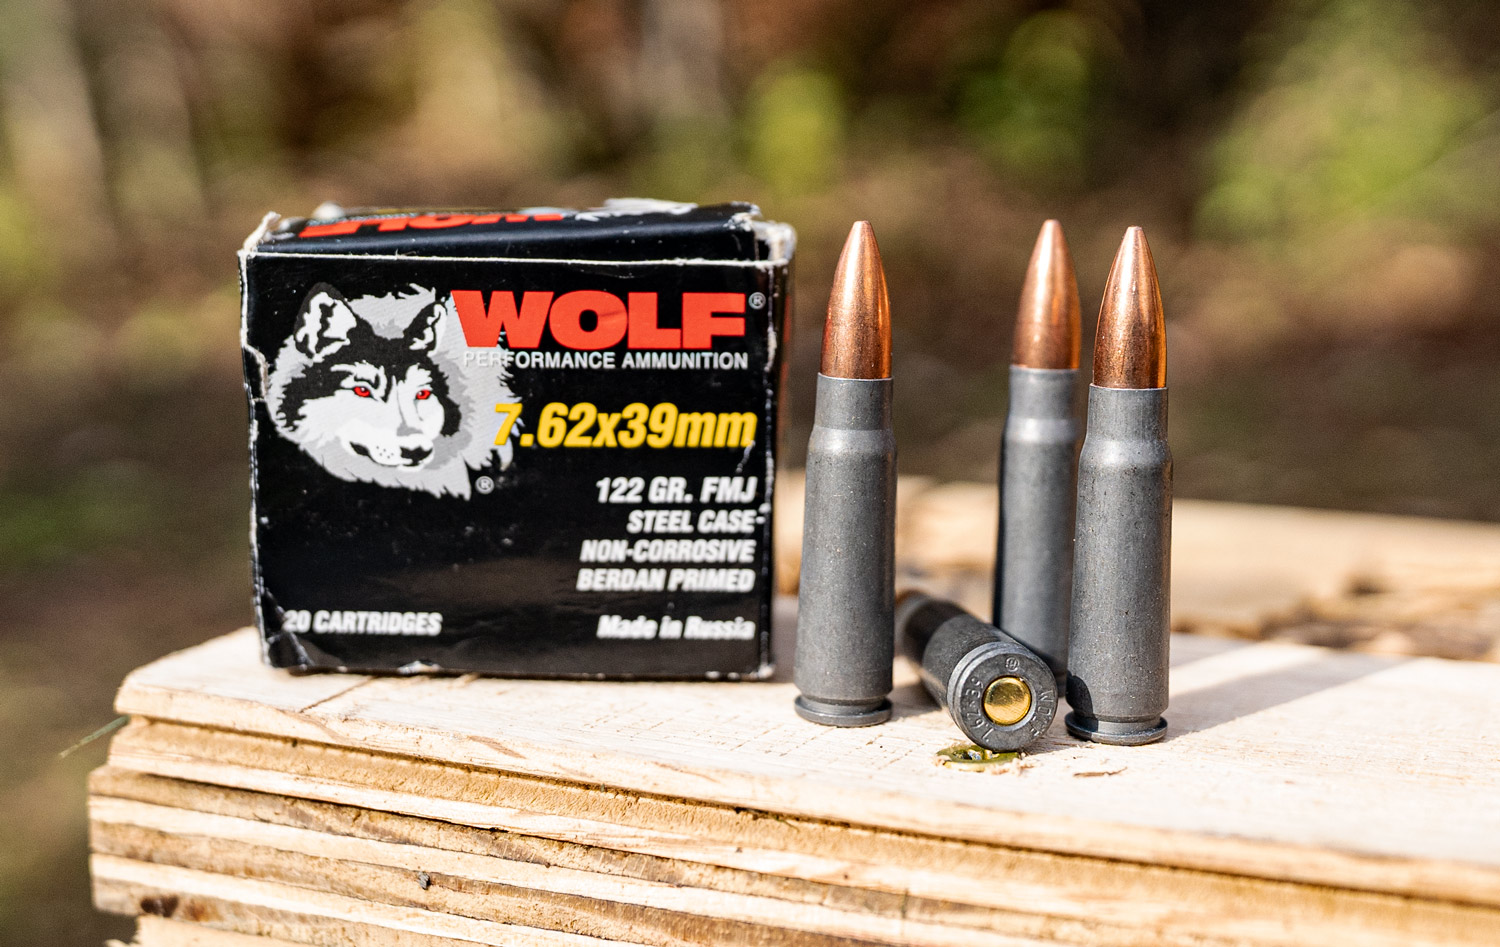 Wolf 7.62x39 ammo at a shooting range